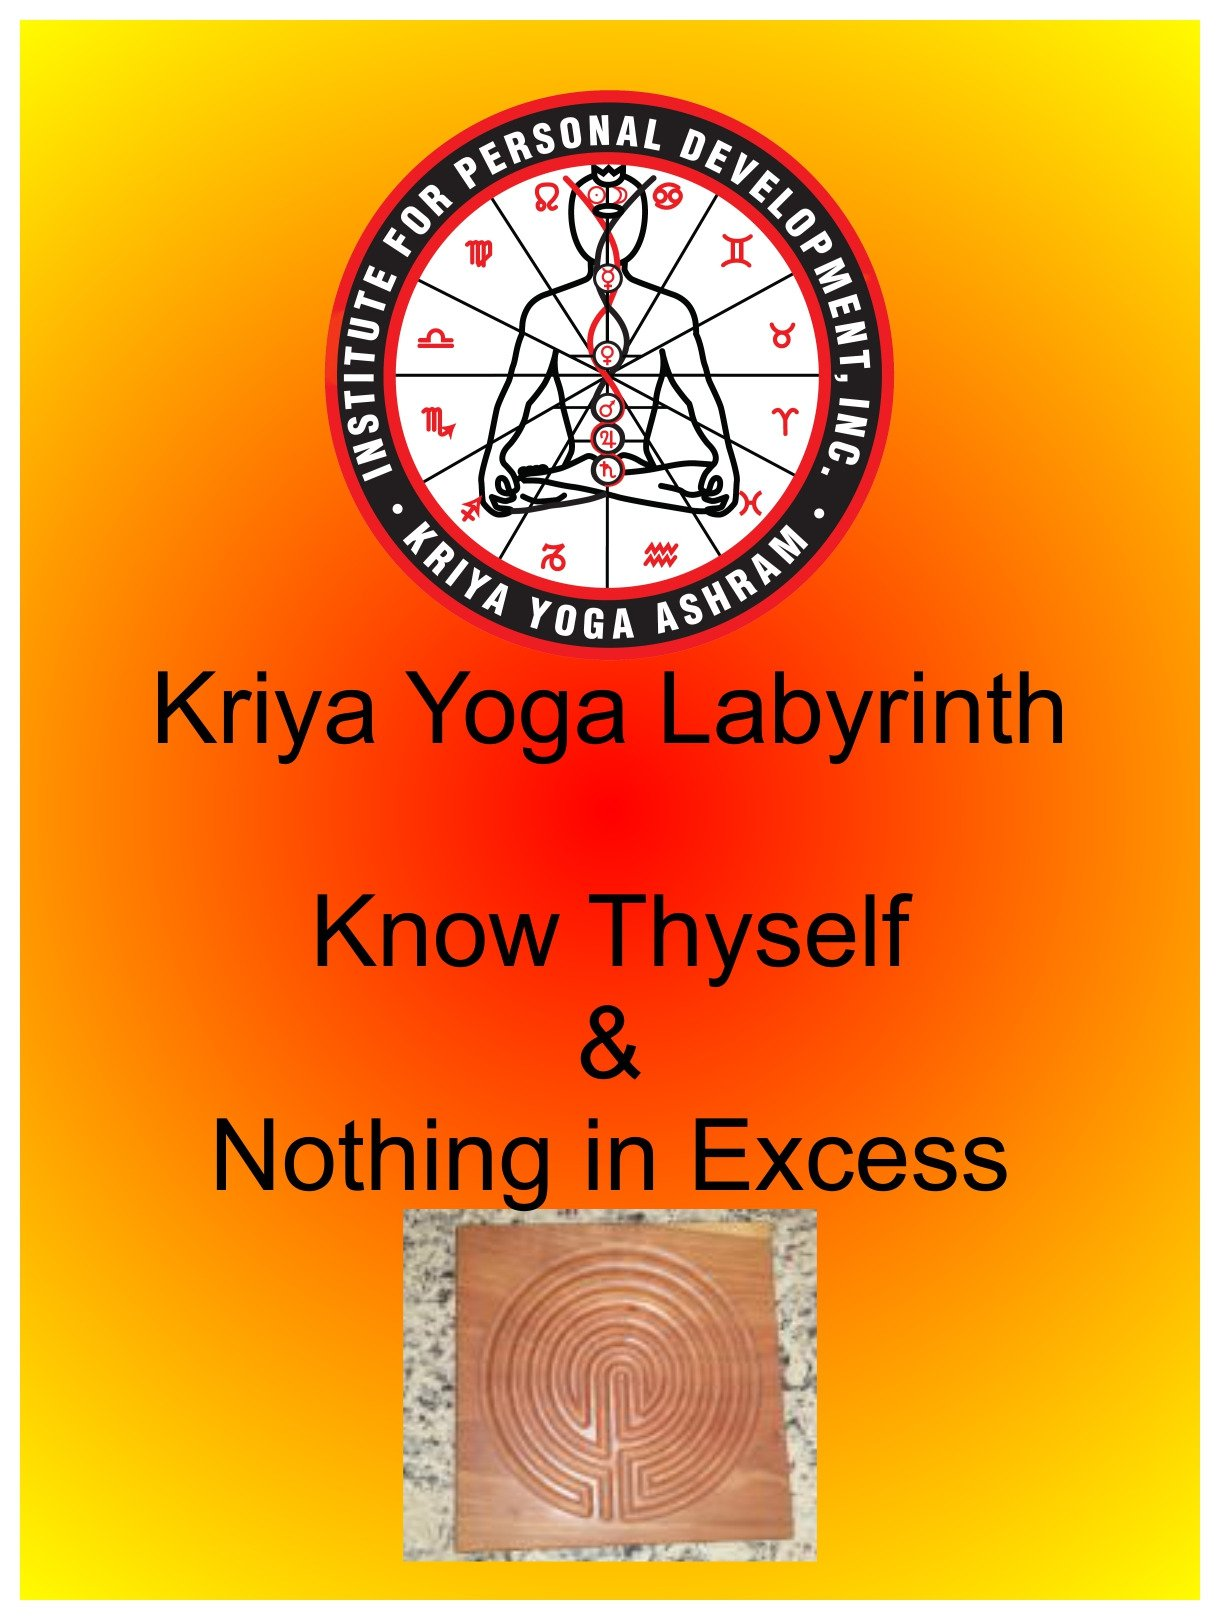 Watch Kriya Yoga Labyrinth Video | Prime Video